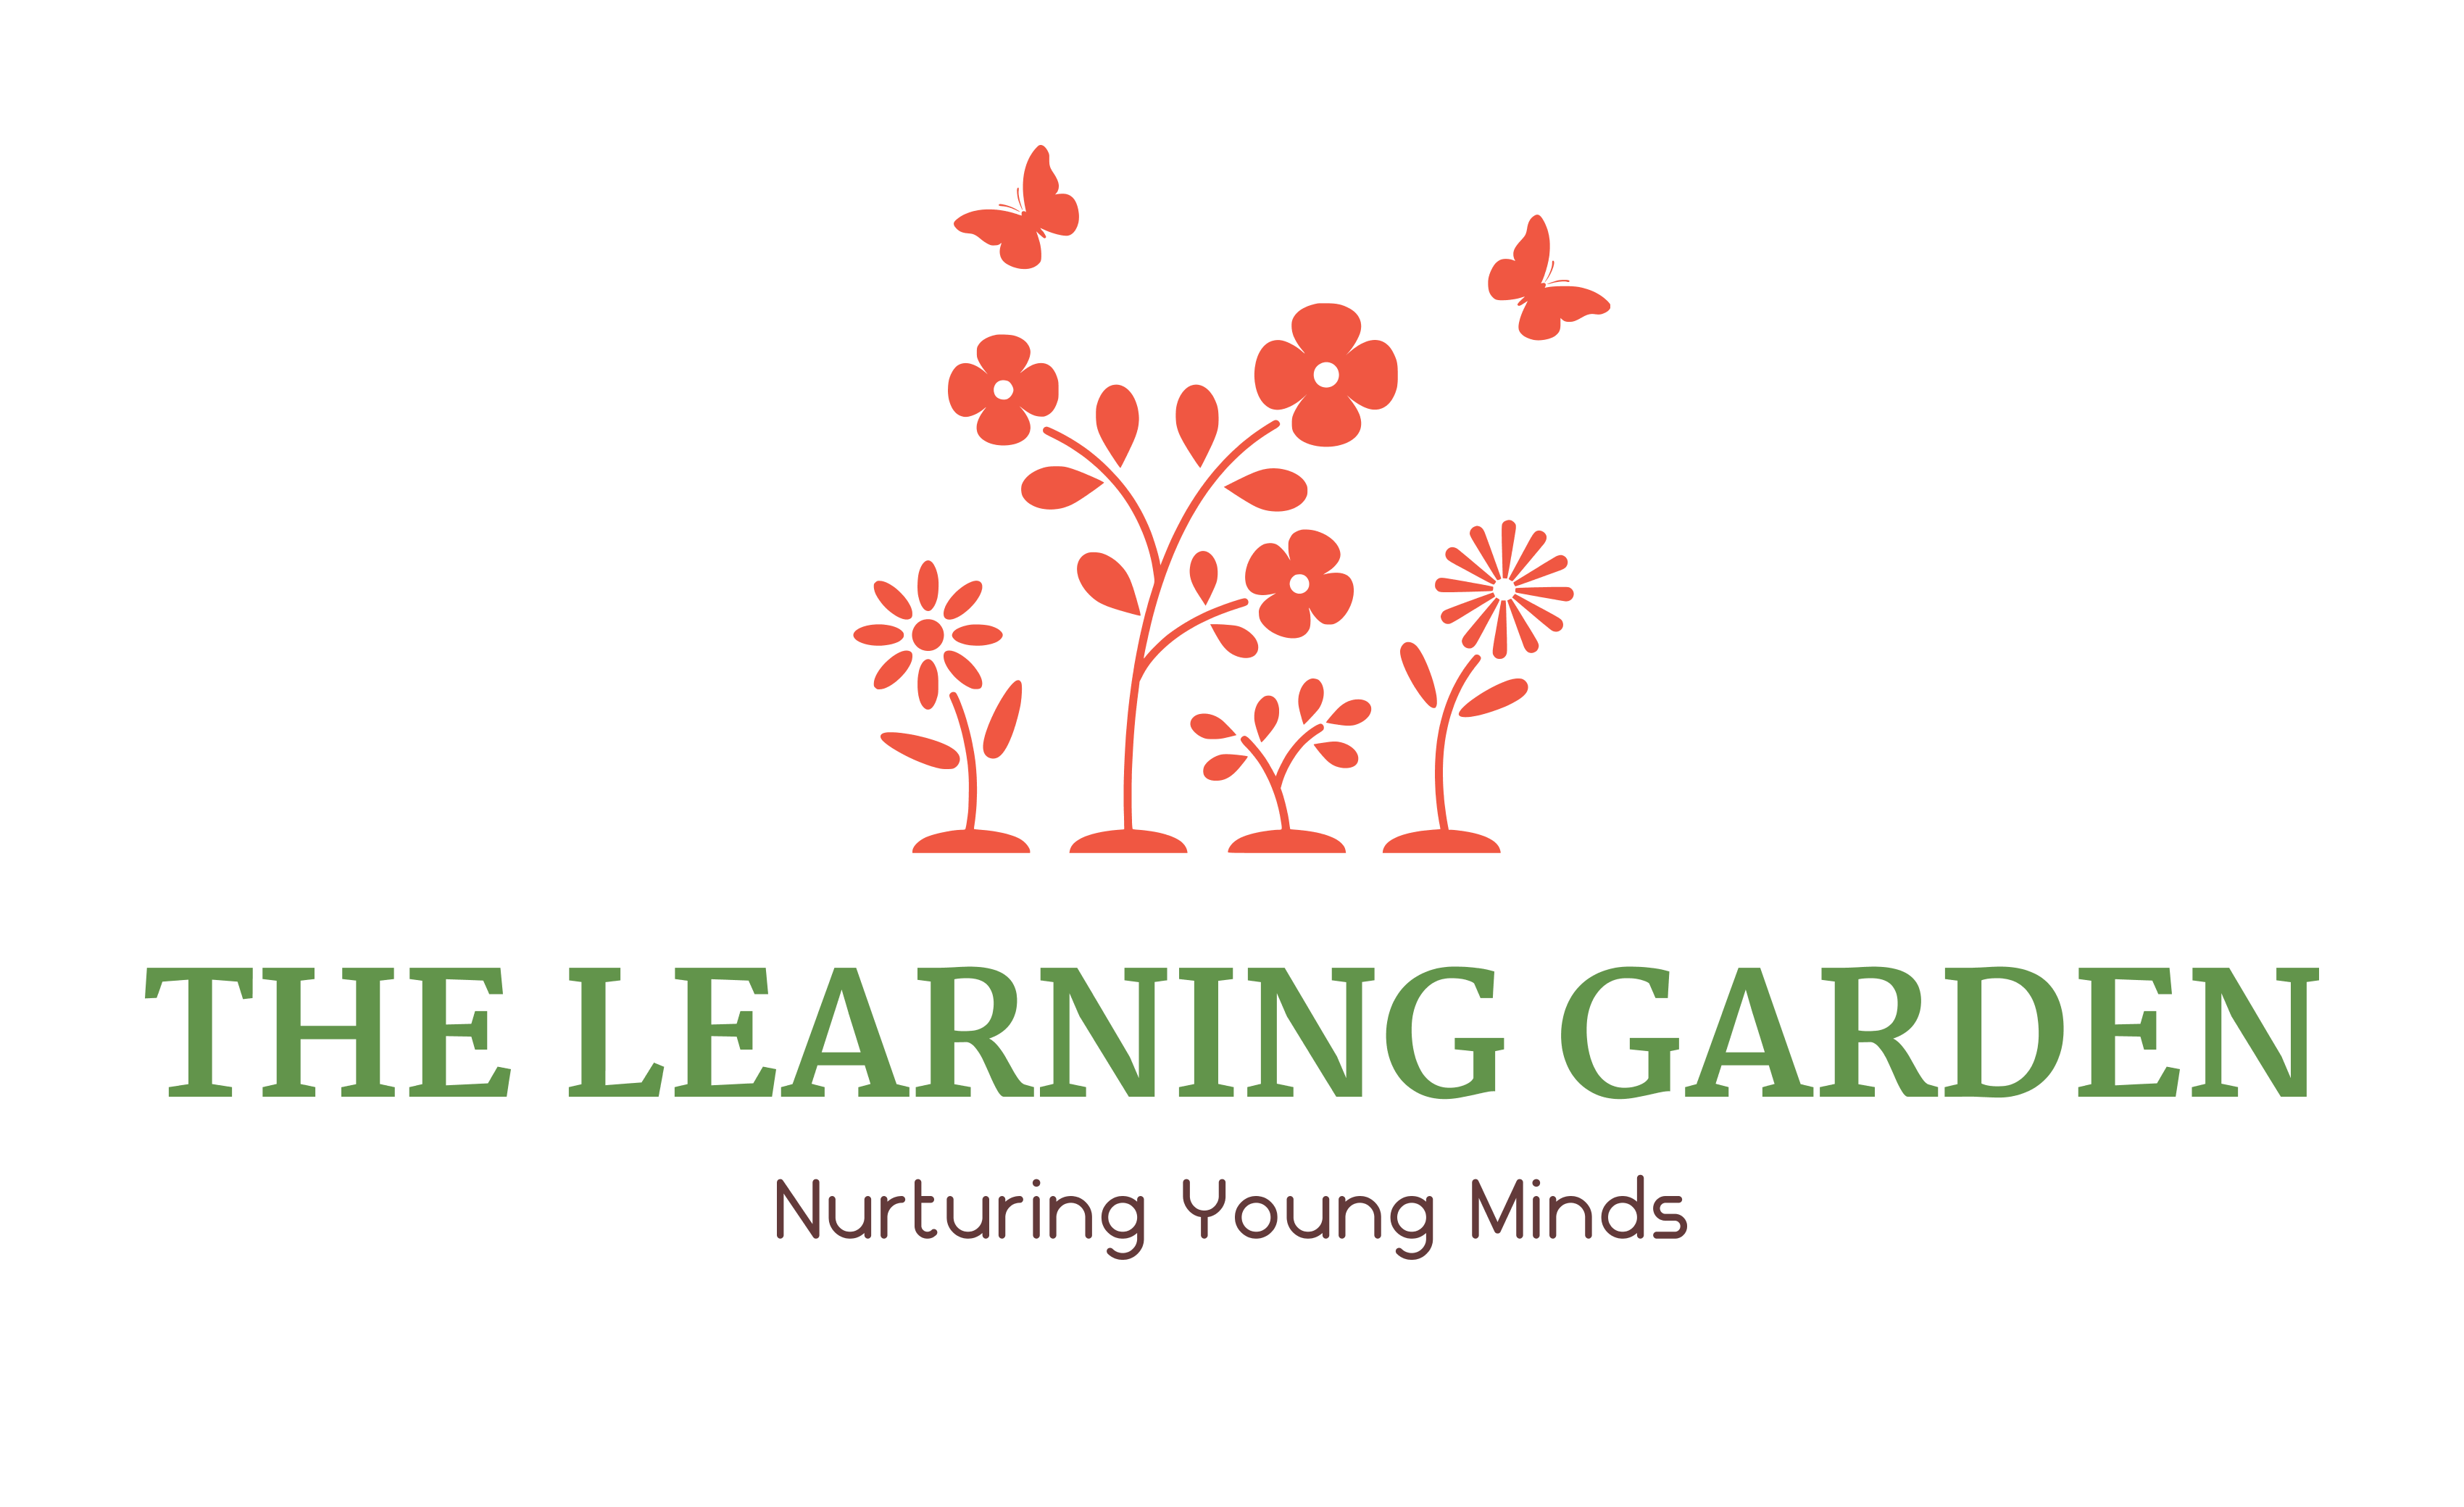 the learning garden home - The Learning Garden